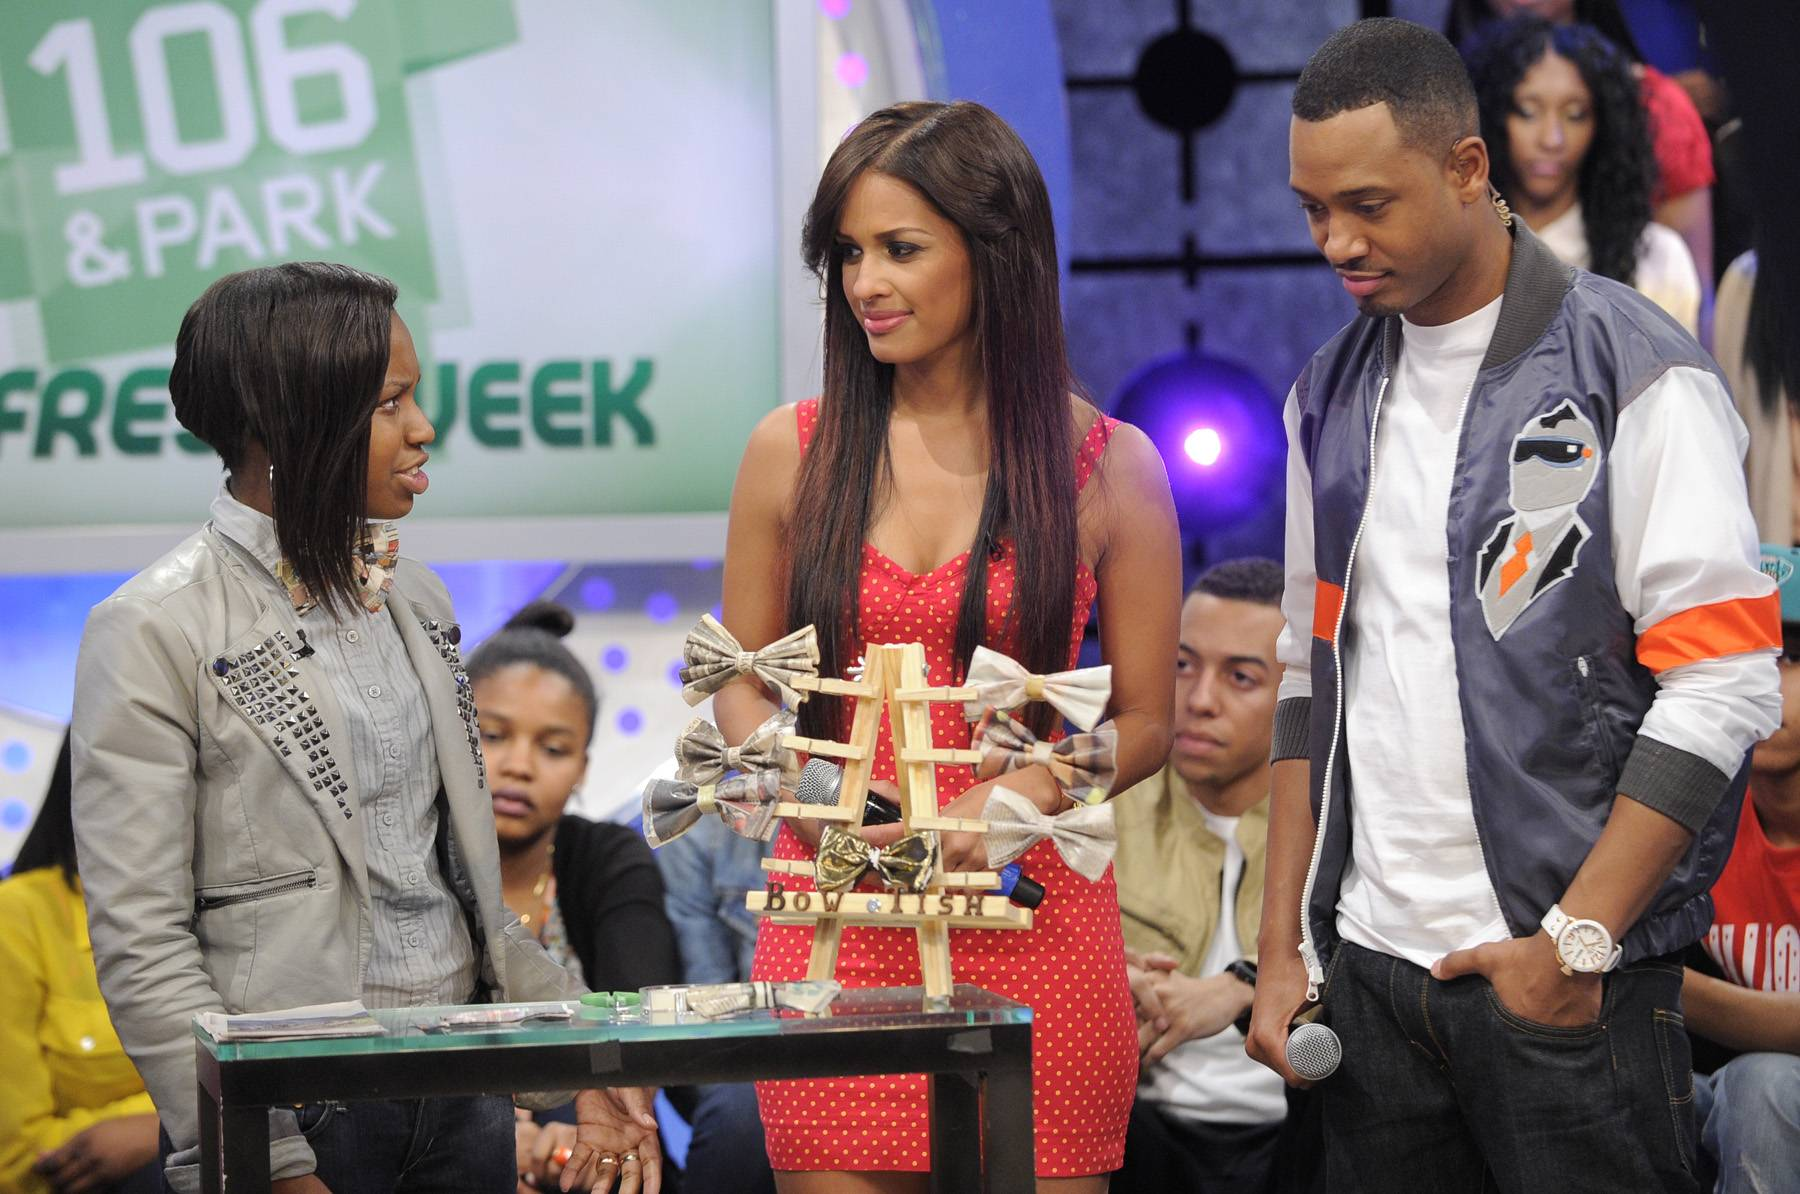 Like My Bowtie? - Tisha Johnson on set with Terrence and Rocsi and 106 & Park, May 3, 2012. (Photo by: John Ricard / BET)